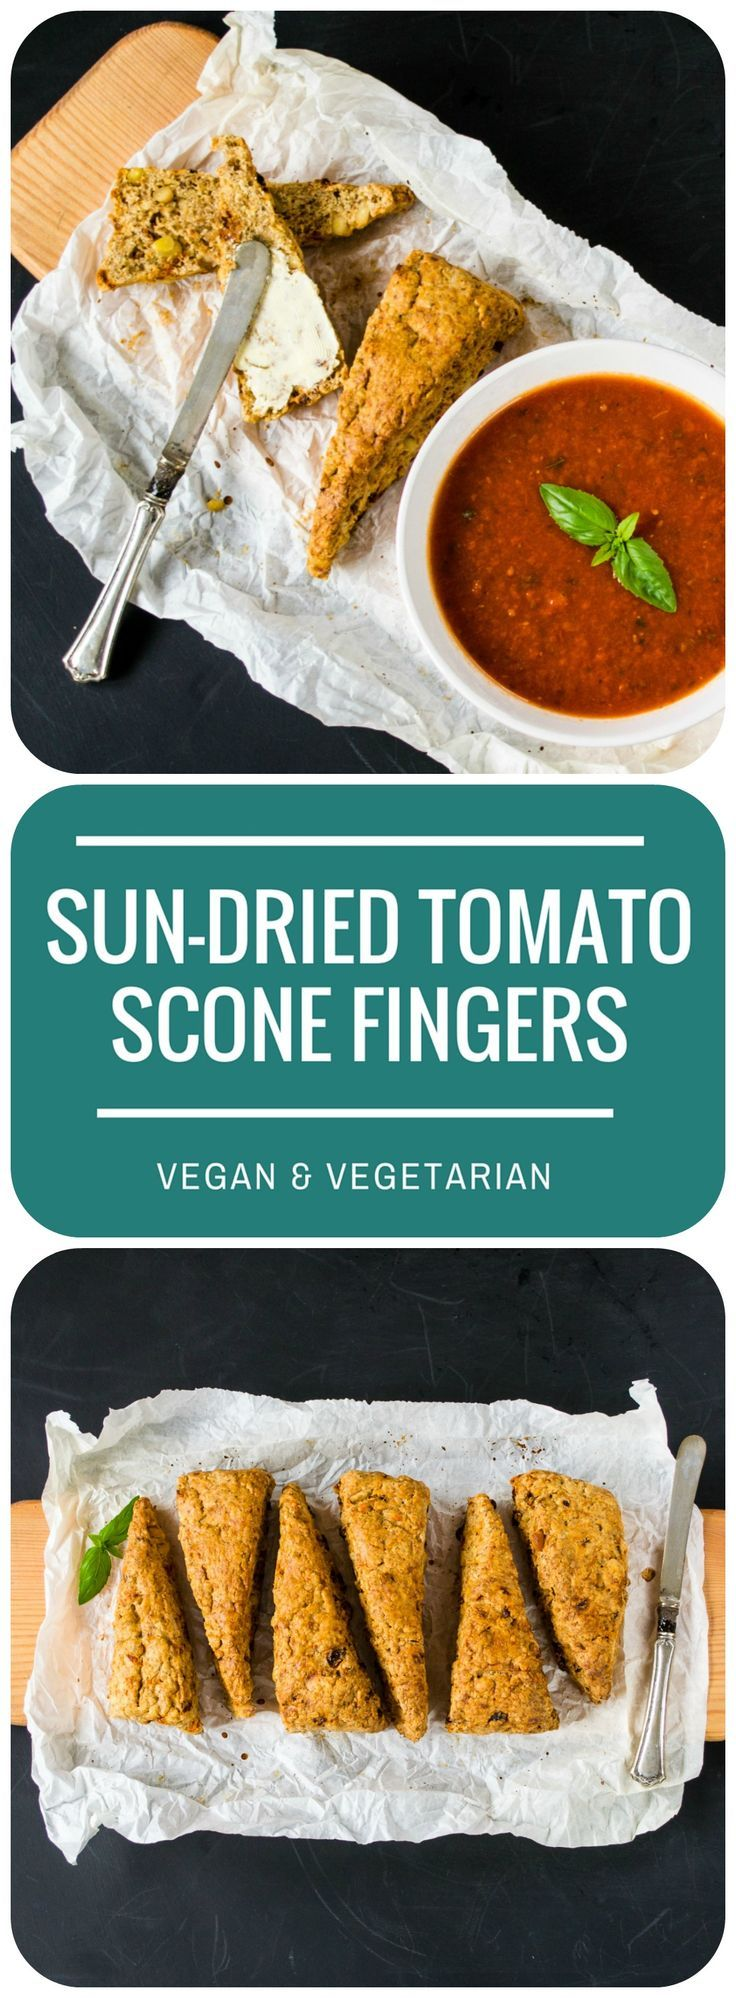 These savoury Sun-Dried Tomato & Pine Nut Scone Fingers are just perfect for dunking into soup, or just scoffing on their own straight from the oven! Vegan and Vegetarian.